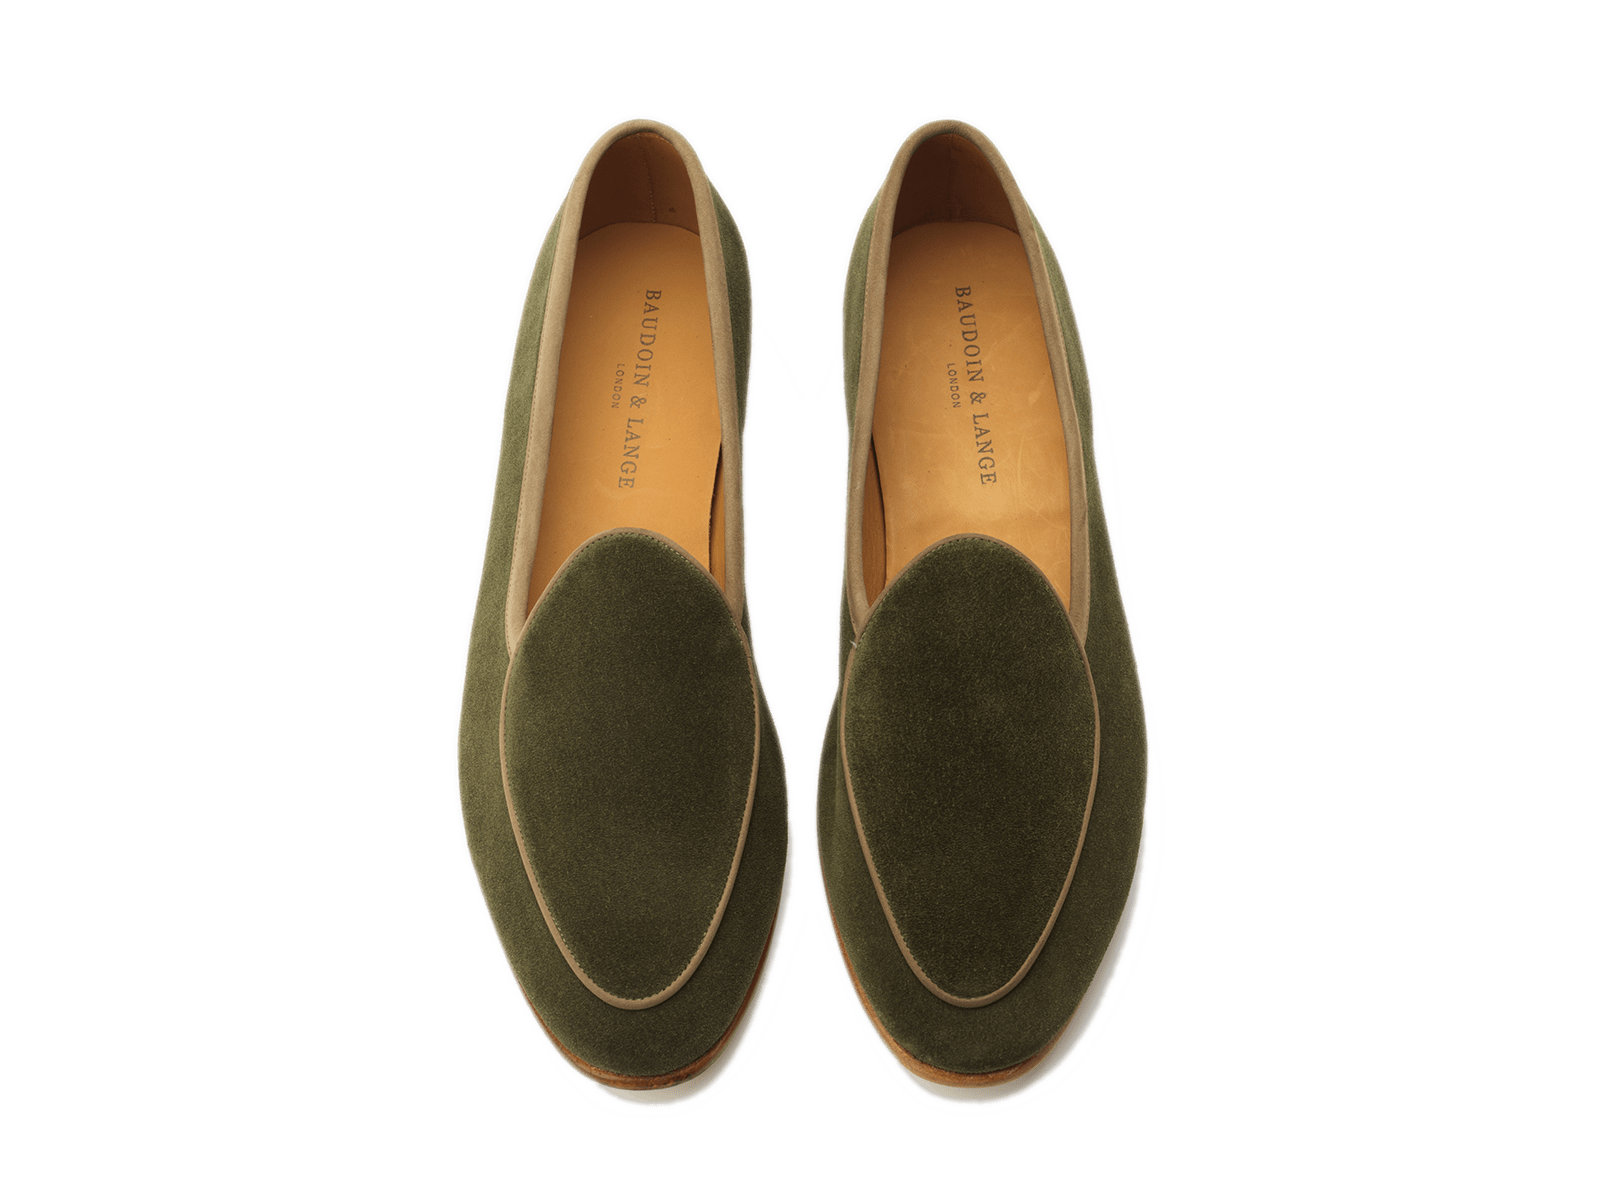 Sagan Classic Vence in Glove Suede Moss